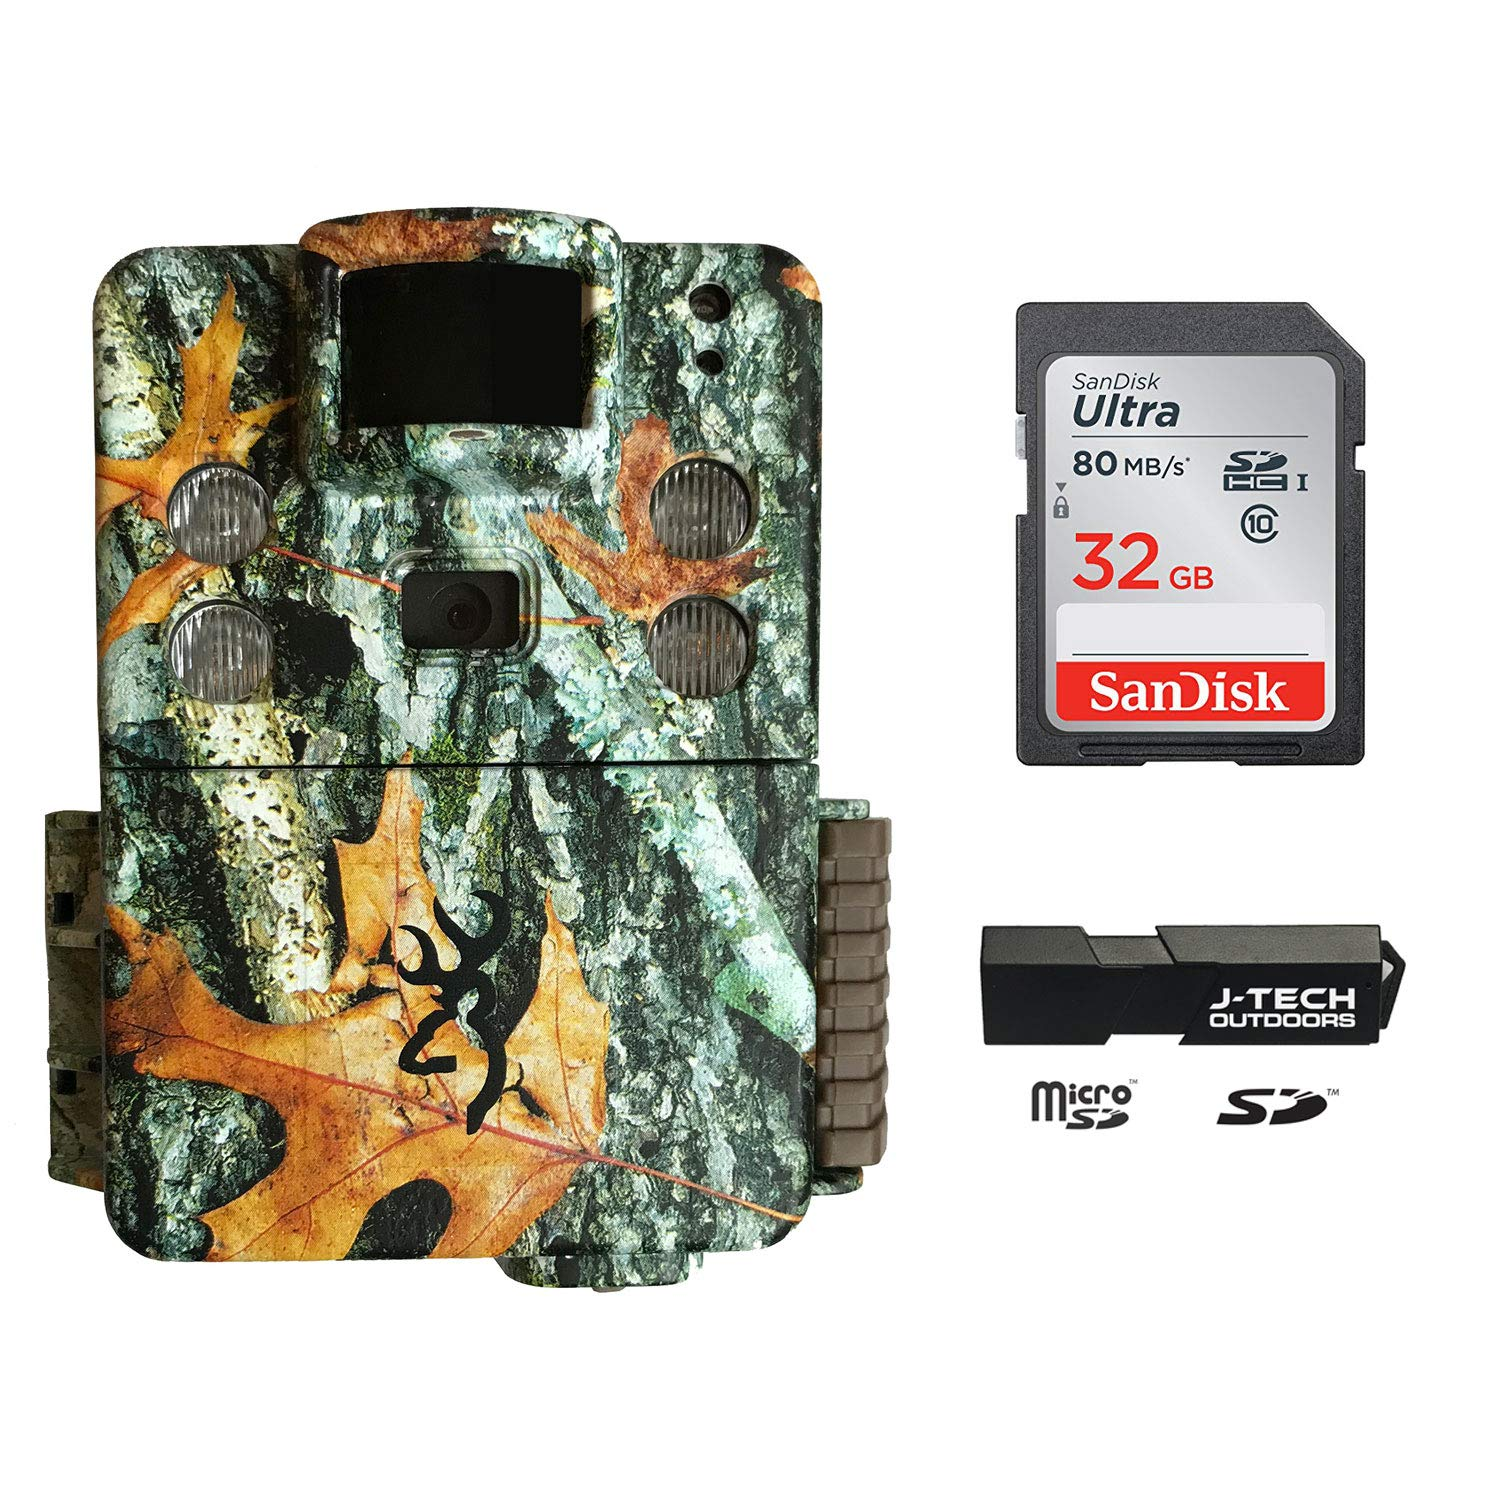 Browning Strike Force HD Pro X (2019) Trail Game Camera Bundle Includes 32GB Memory Card and J-TECH Card Reader (20MP) | BTC5HDPX by Browning Trail Cameras